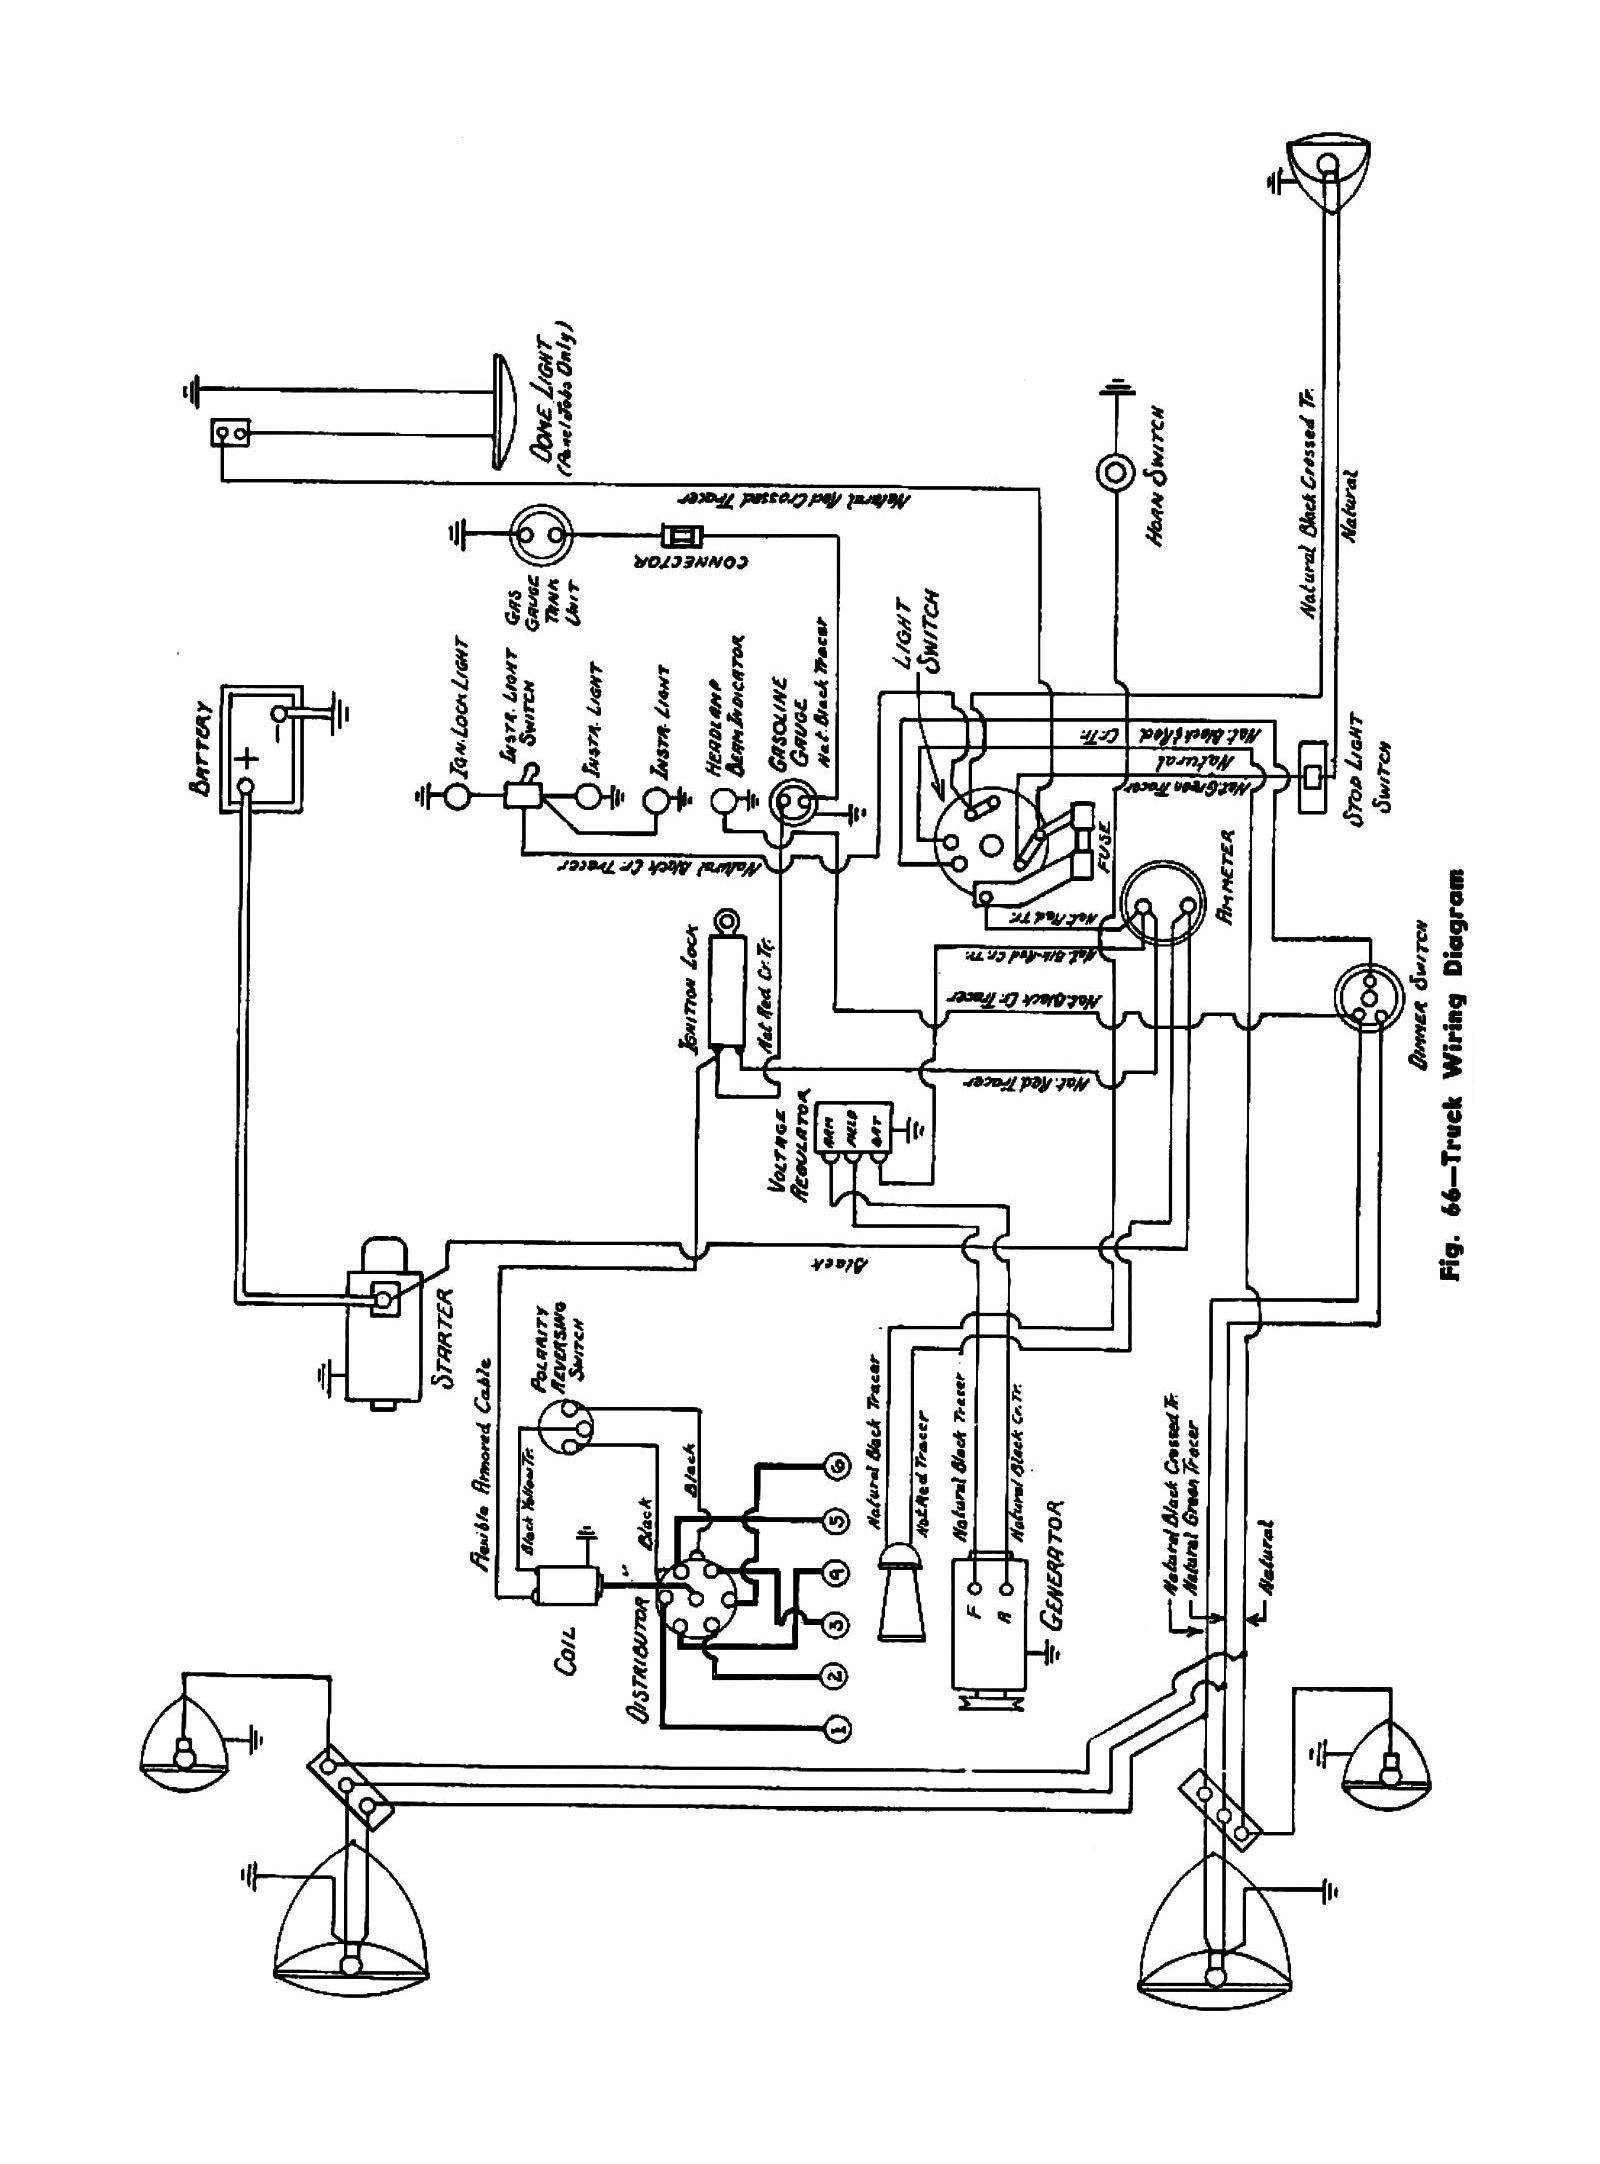 1942 Dodge Wiring Diagram | Schematic Diagram